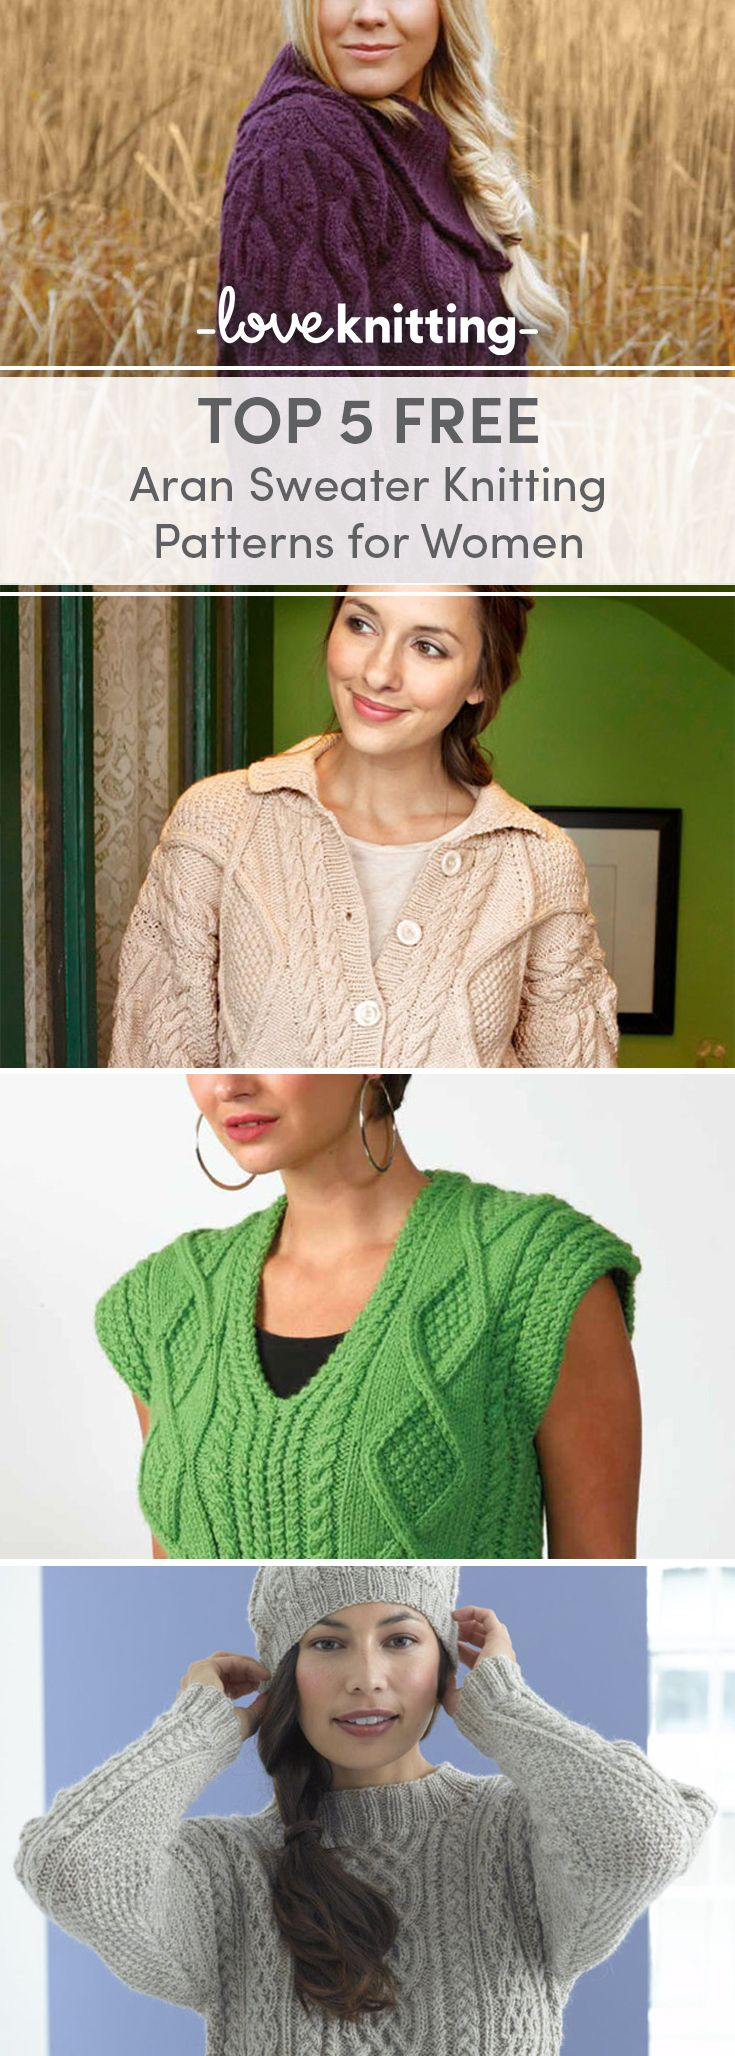 79aed2e1b841 Top 5 Free Aran Knitting Patterns for Women - Jumpers